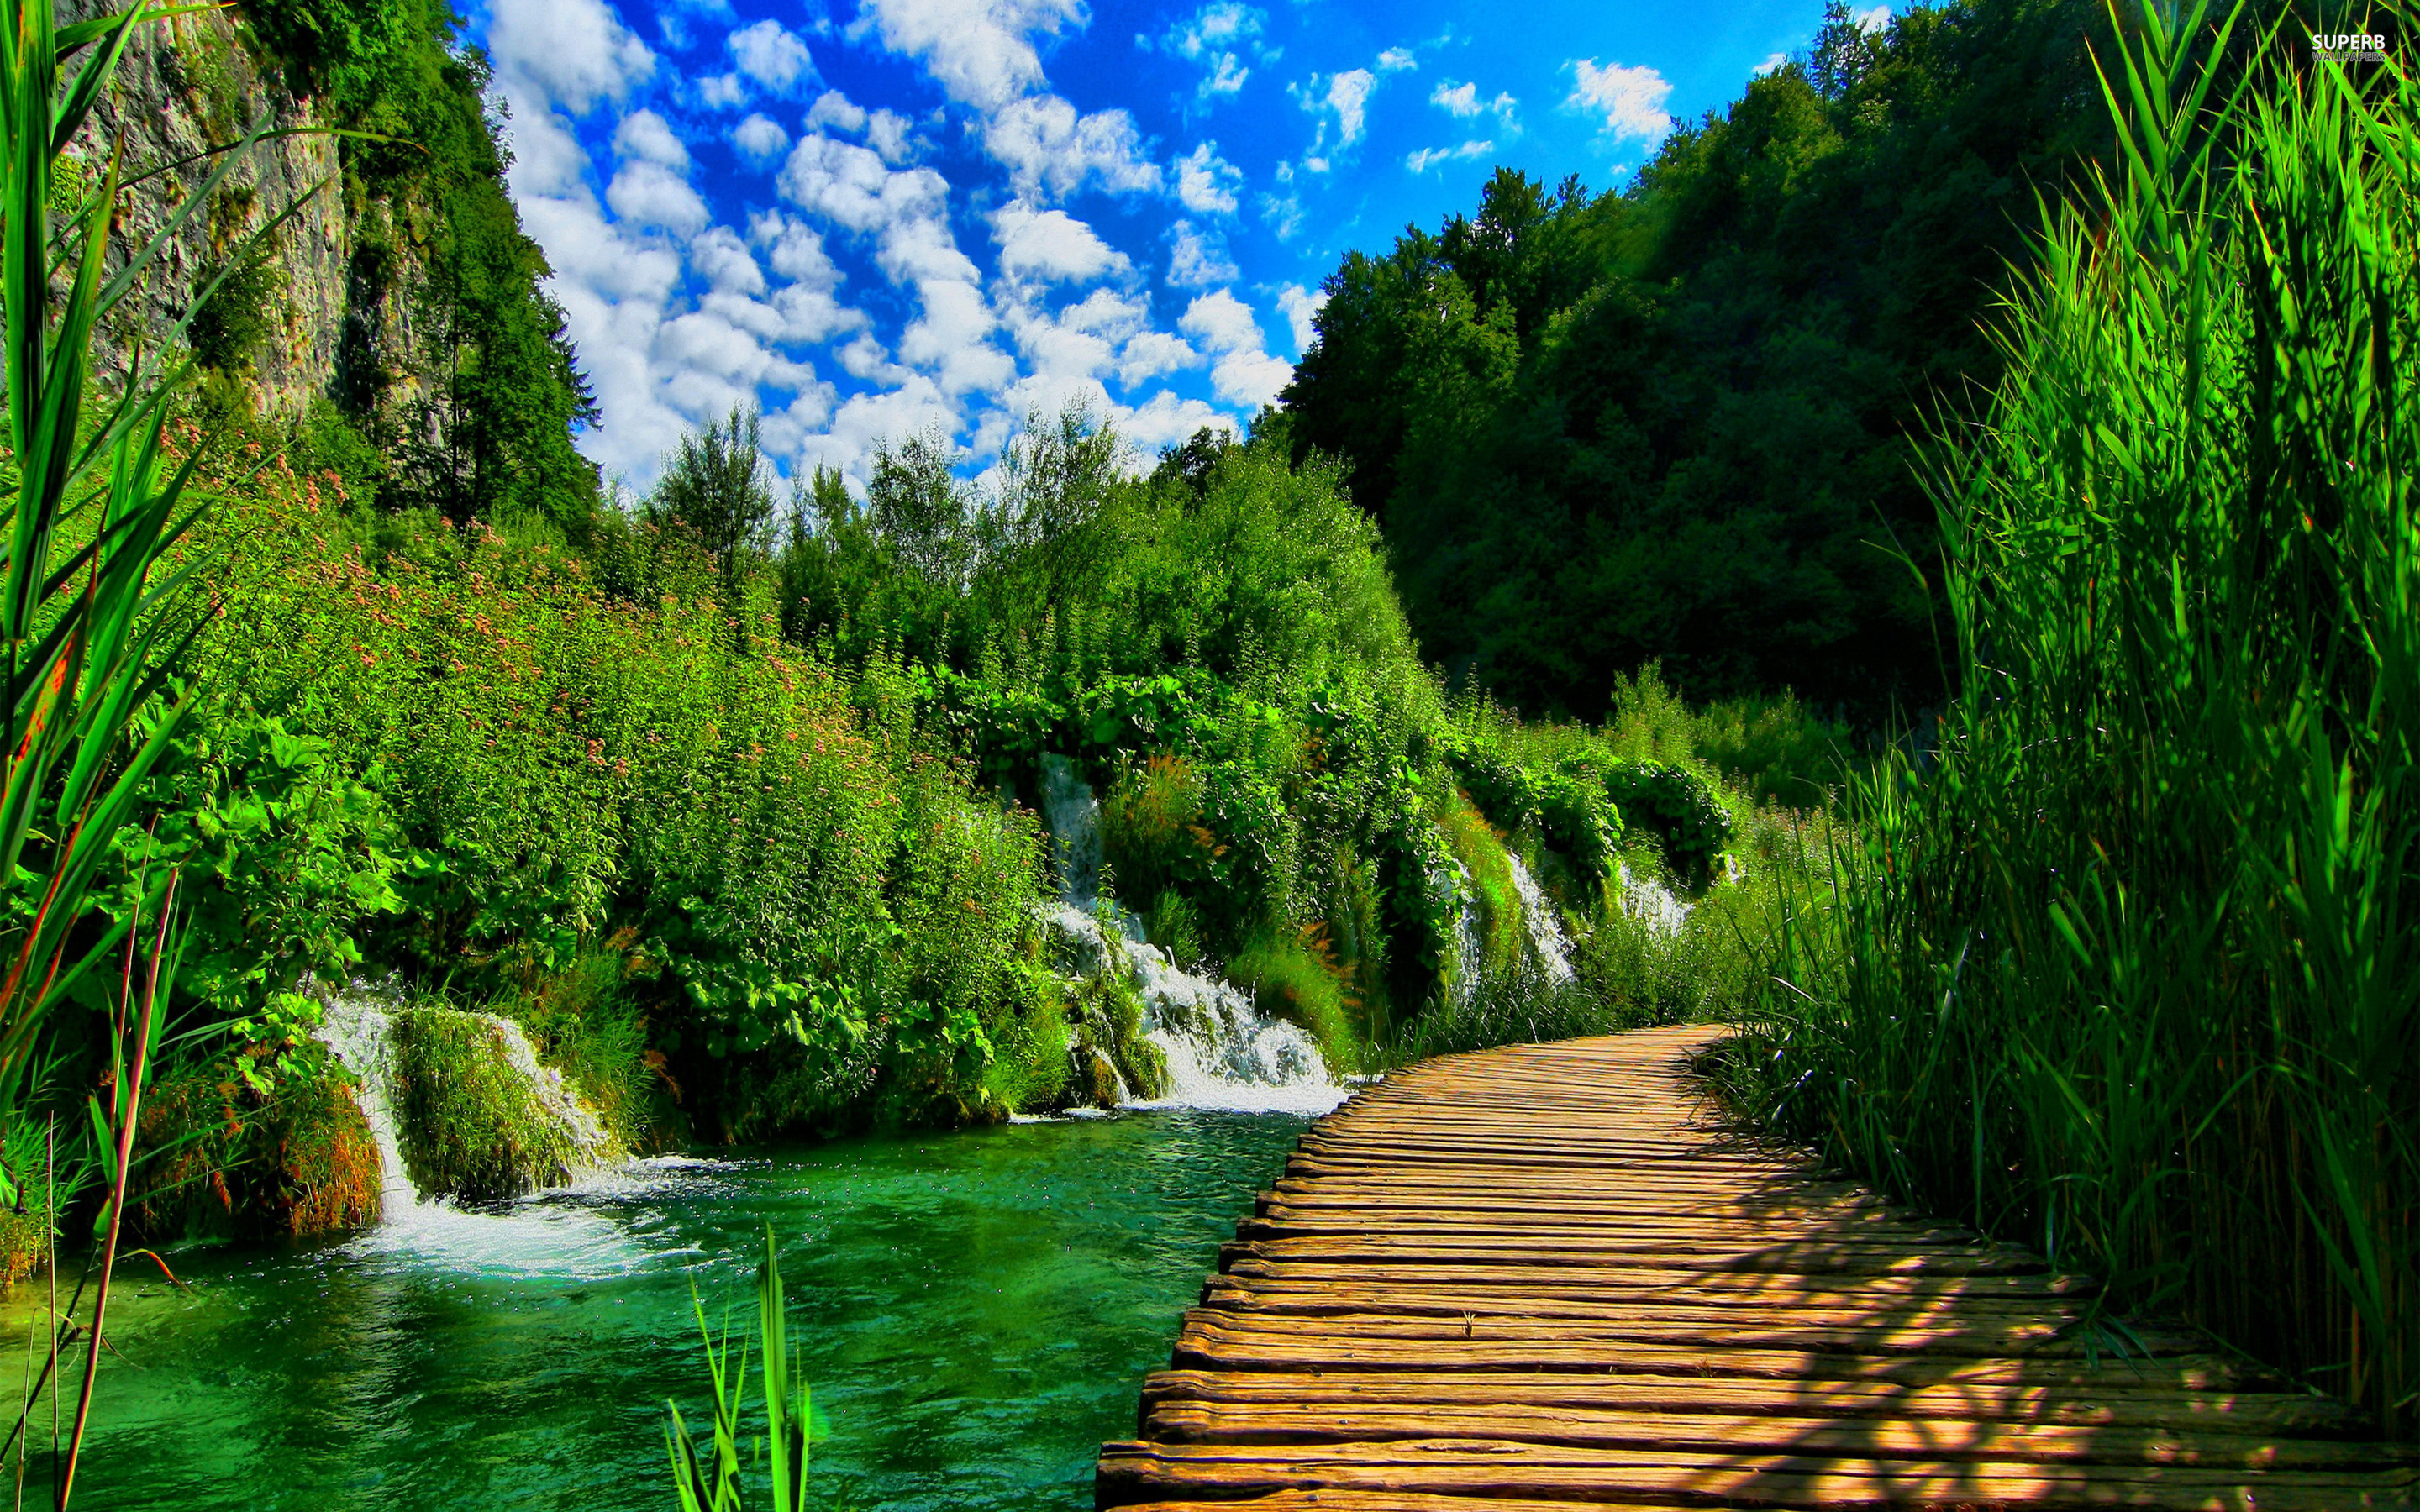 Plitvice lakes wallpapers high quality download free - Plitvice lakes hd ...